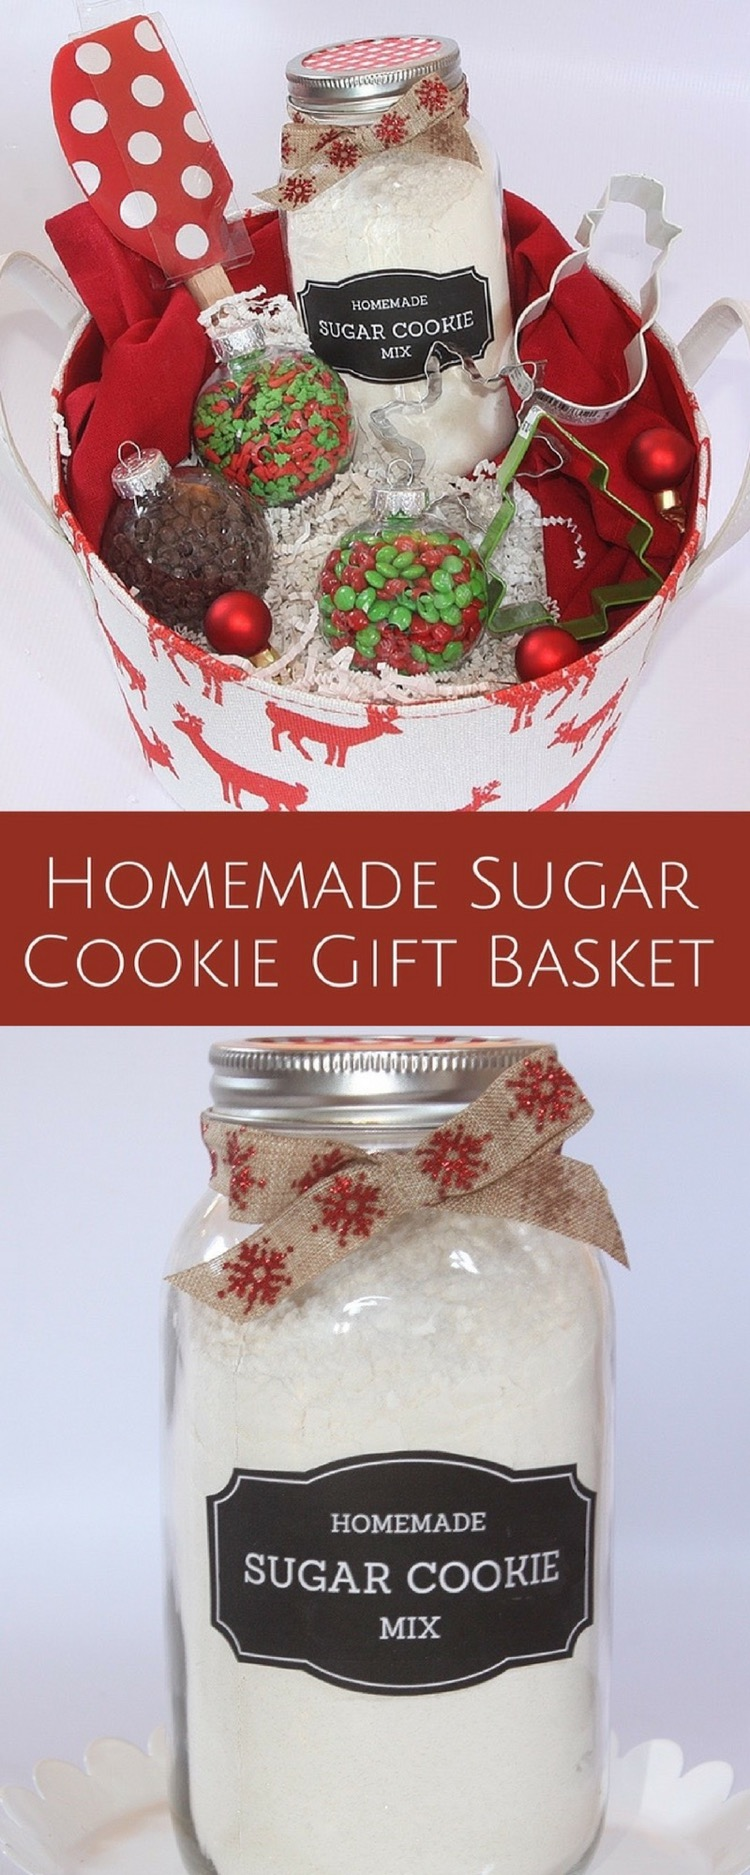 Homemade Sugar Cookie Gift Basket - Thrifty and Thriving